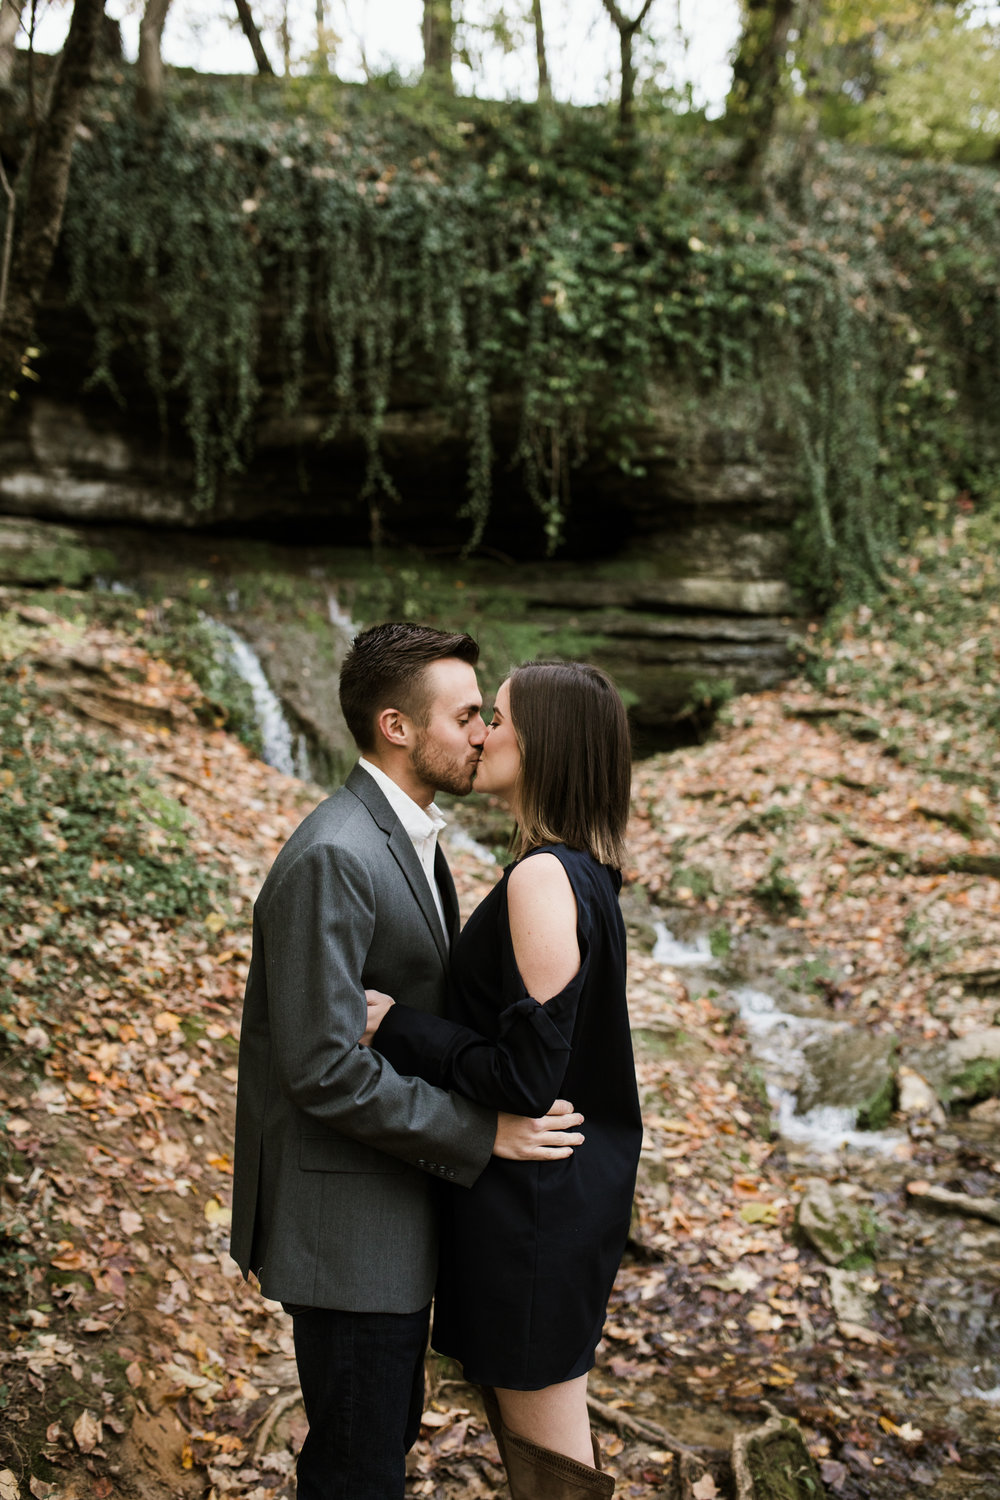 Kelsey and Daniel Engagement 2018 Crystal Ludwick Photo Louisville Wedding Photographer Kentucky Wedding Photographer (23 of 31).jpg